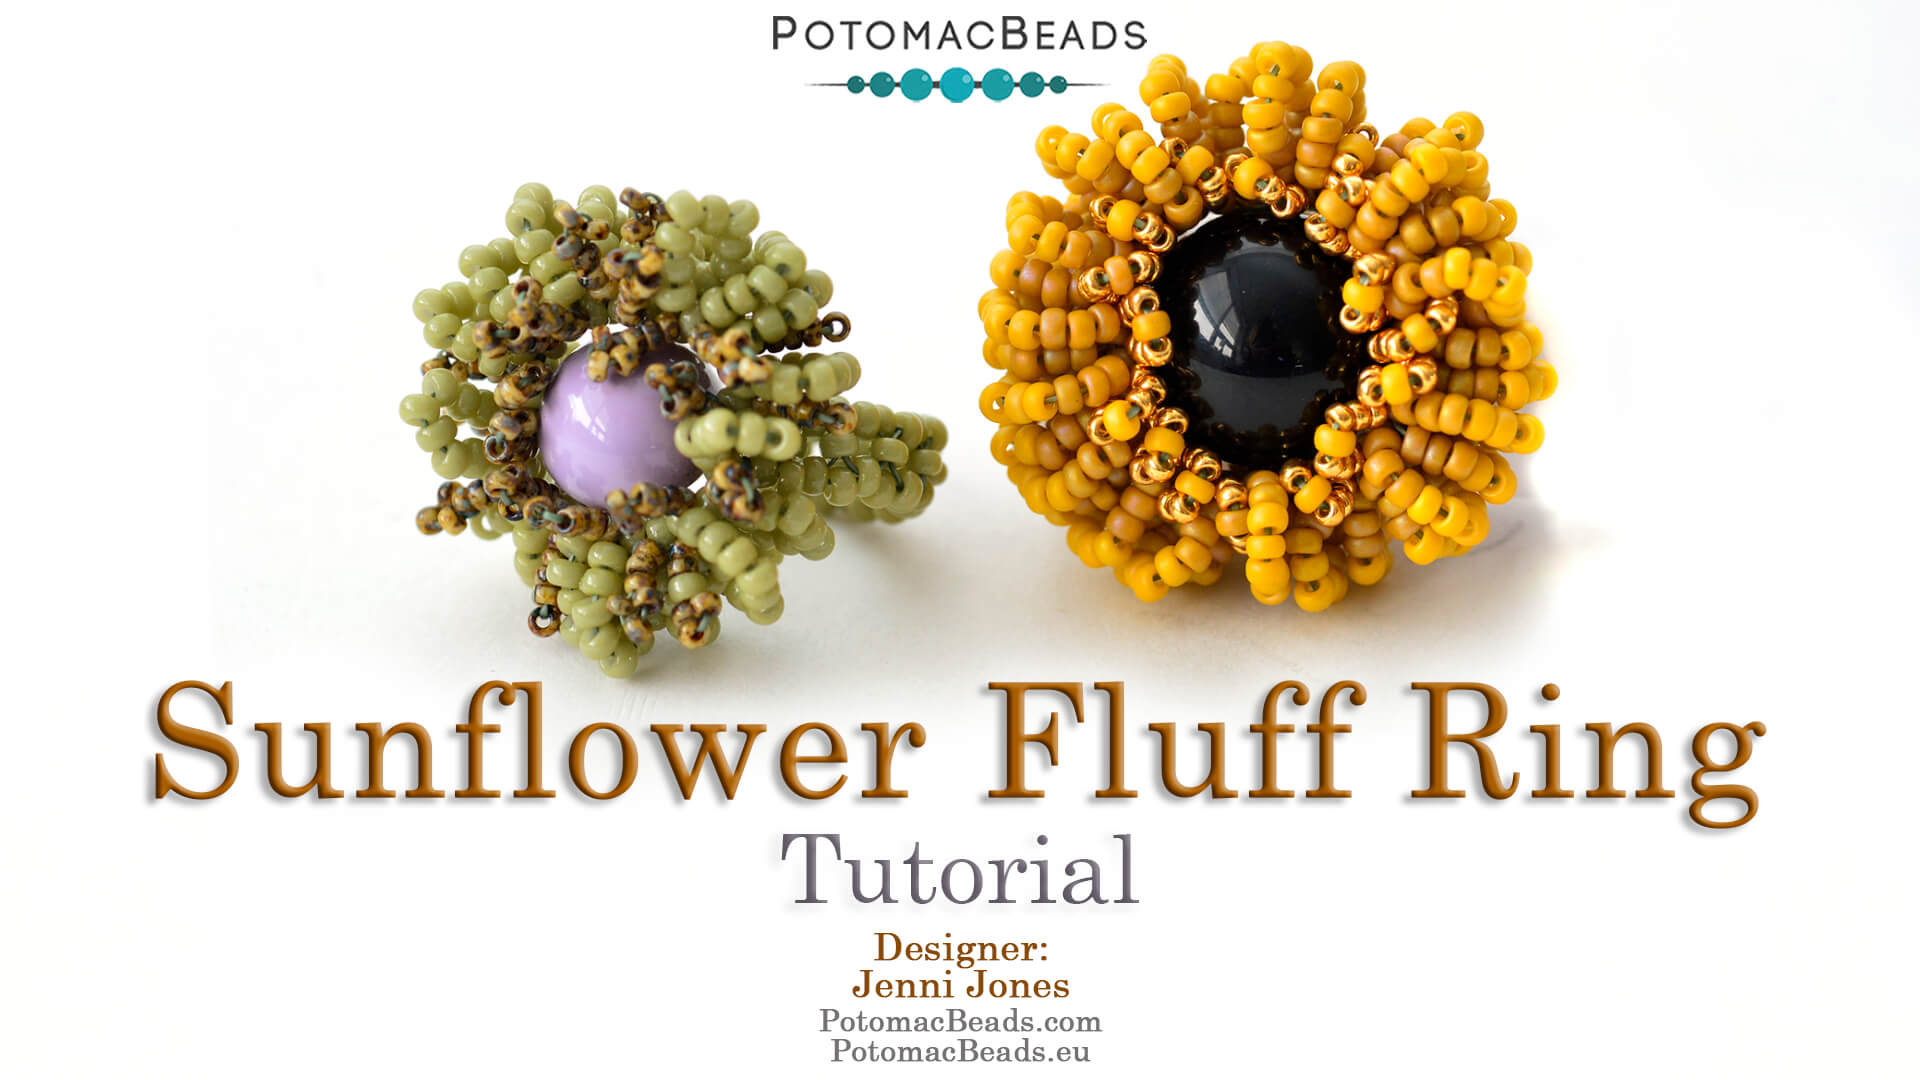 How to Bead Jewelry / Beading Tutorials & Jewel Making Videos / Right Angle Weave (RAW) Videos / Sunflower Fluff Ring Tutorial